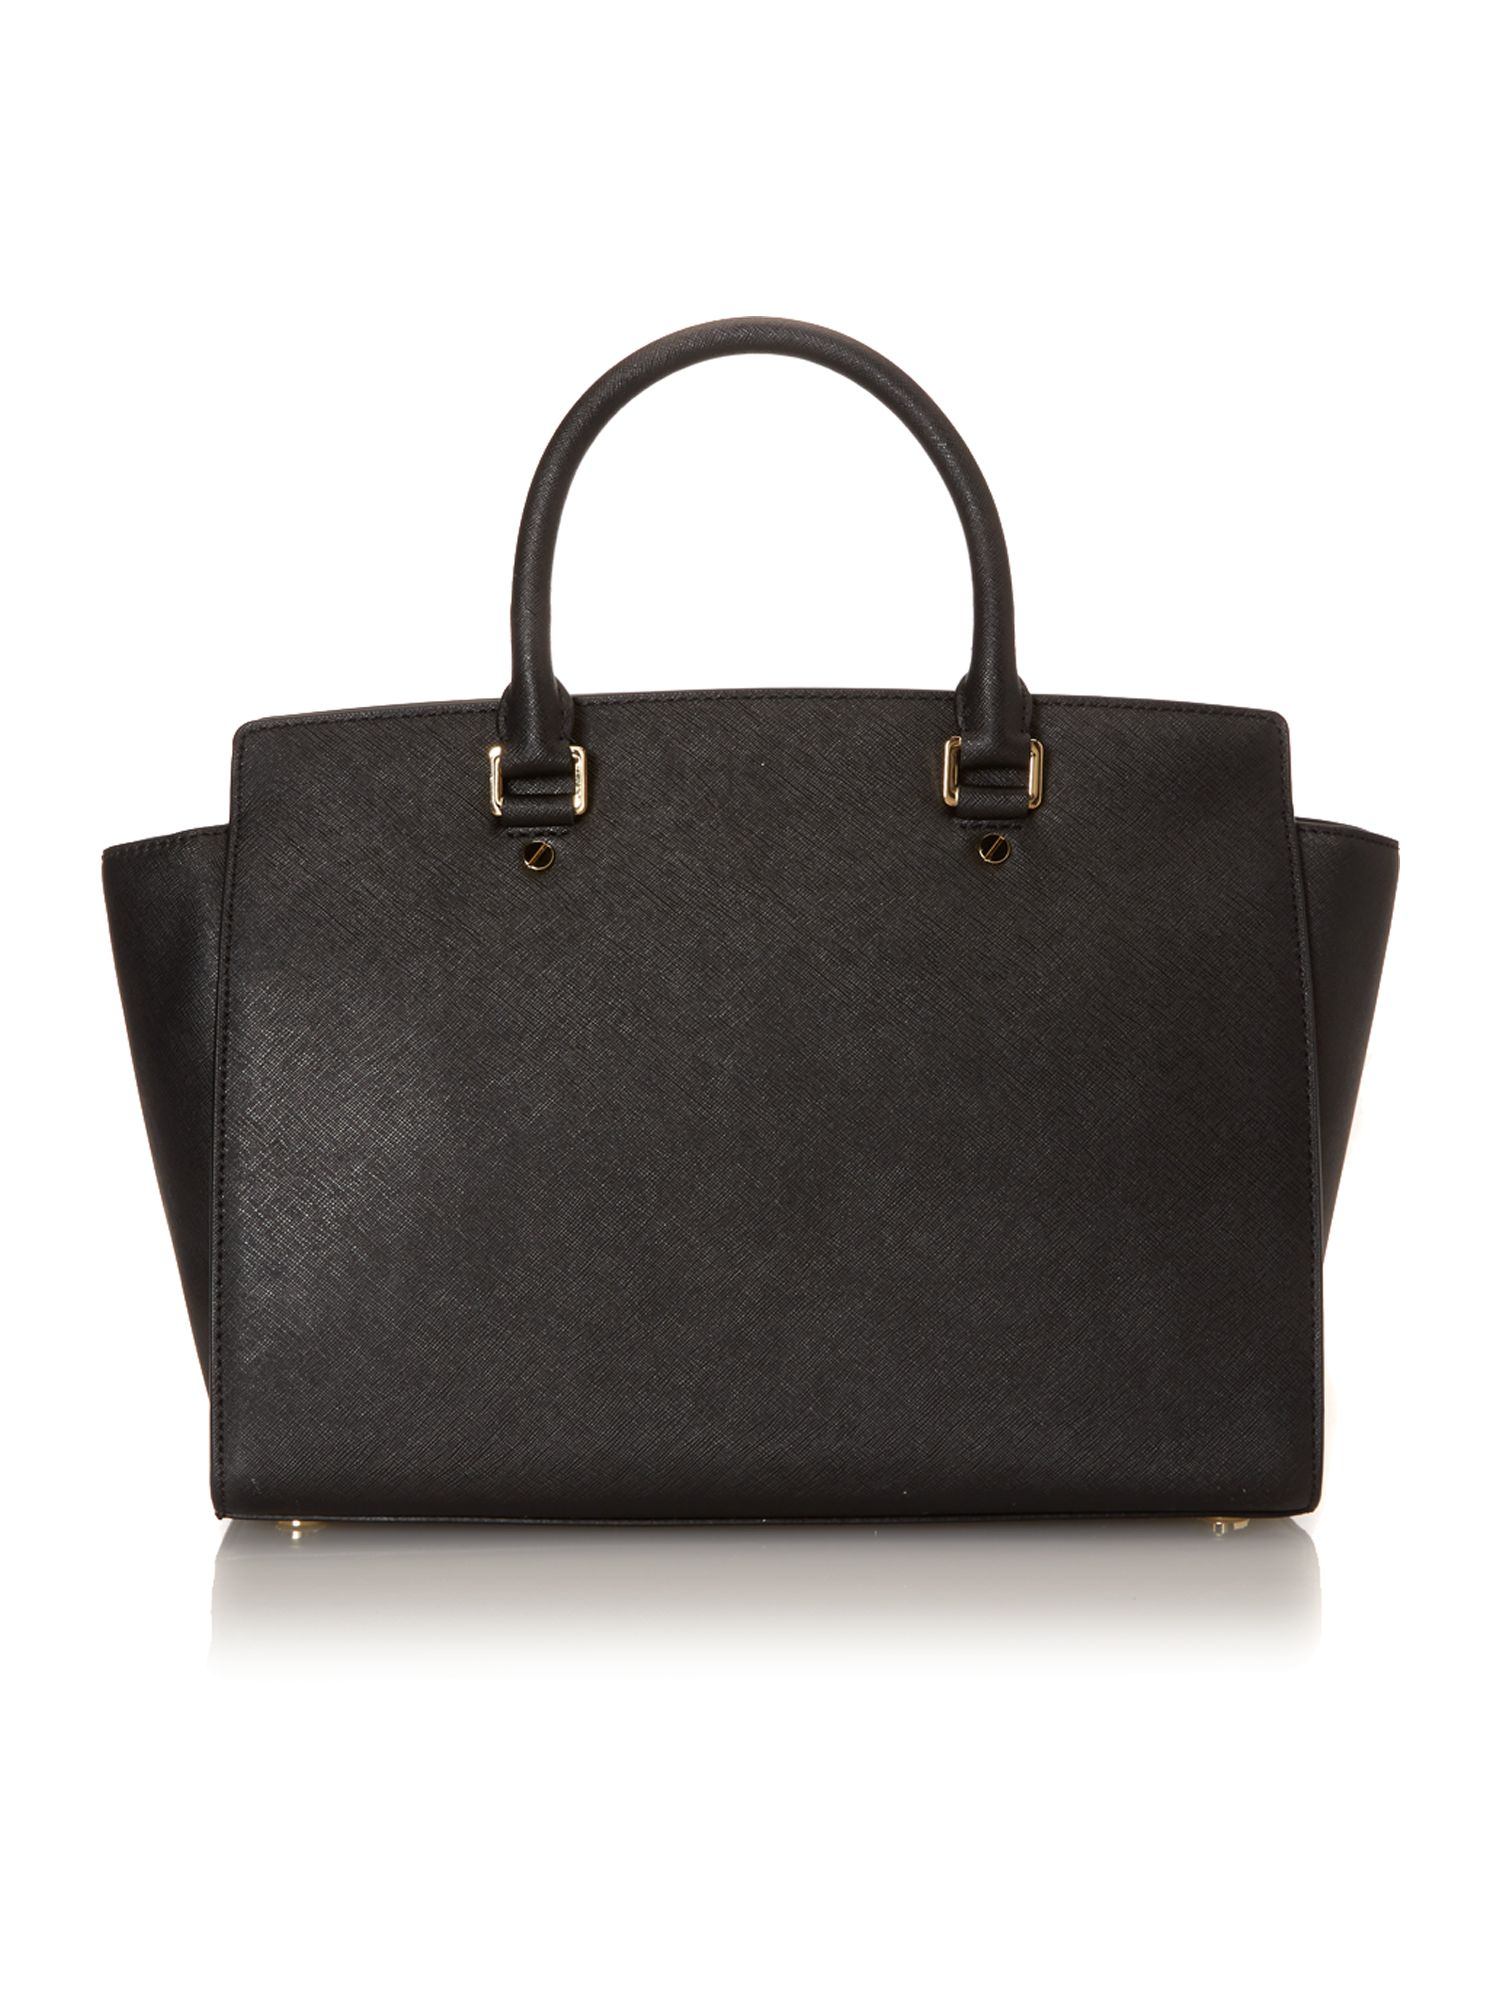 68a5d53b6338d1 Black Tote Michael Kors | Stanford Center for Opportunity Policy in ...